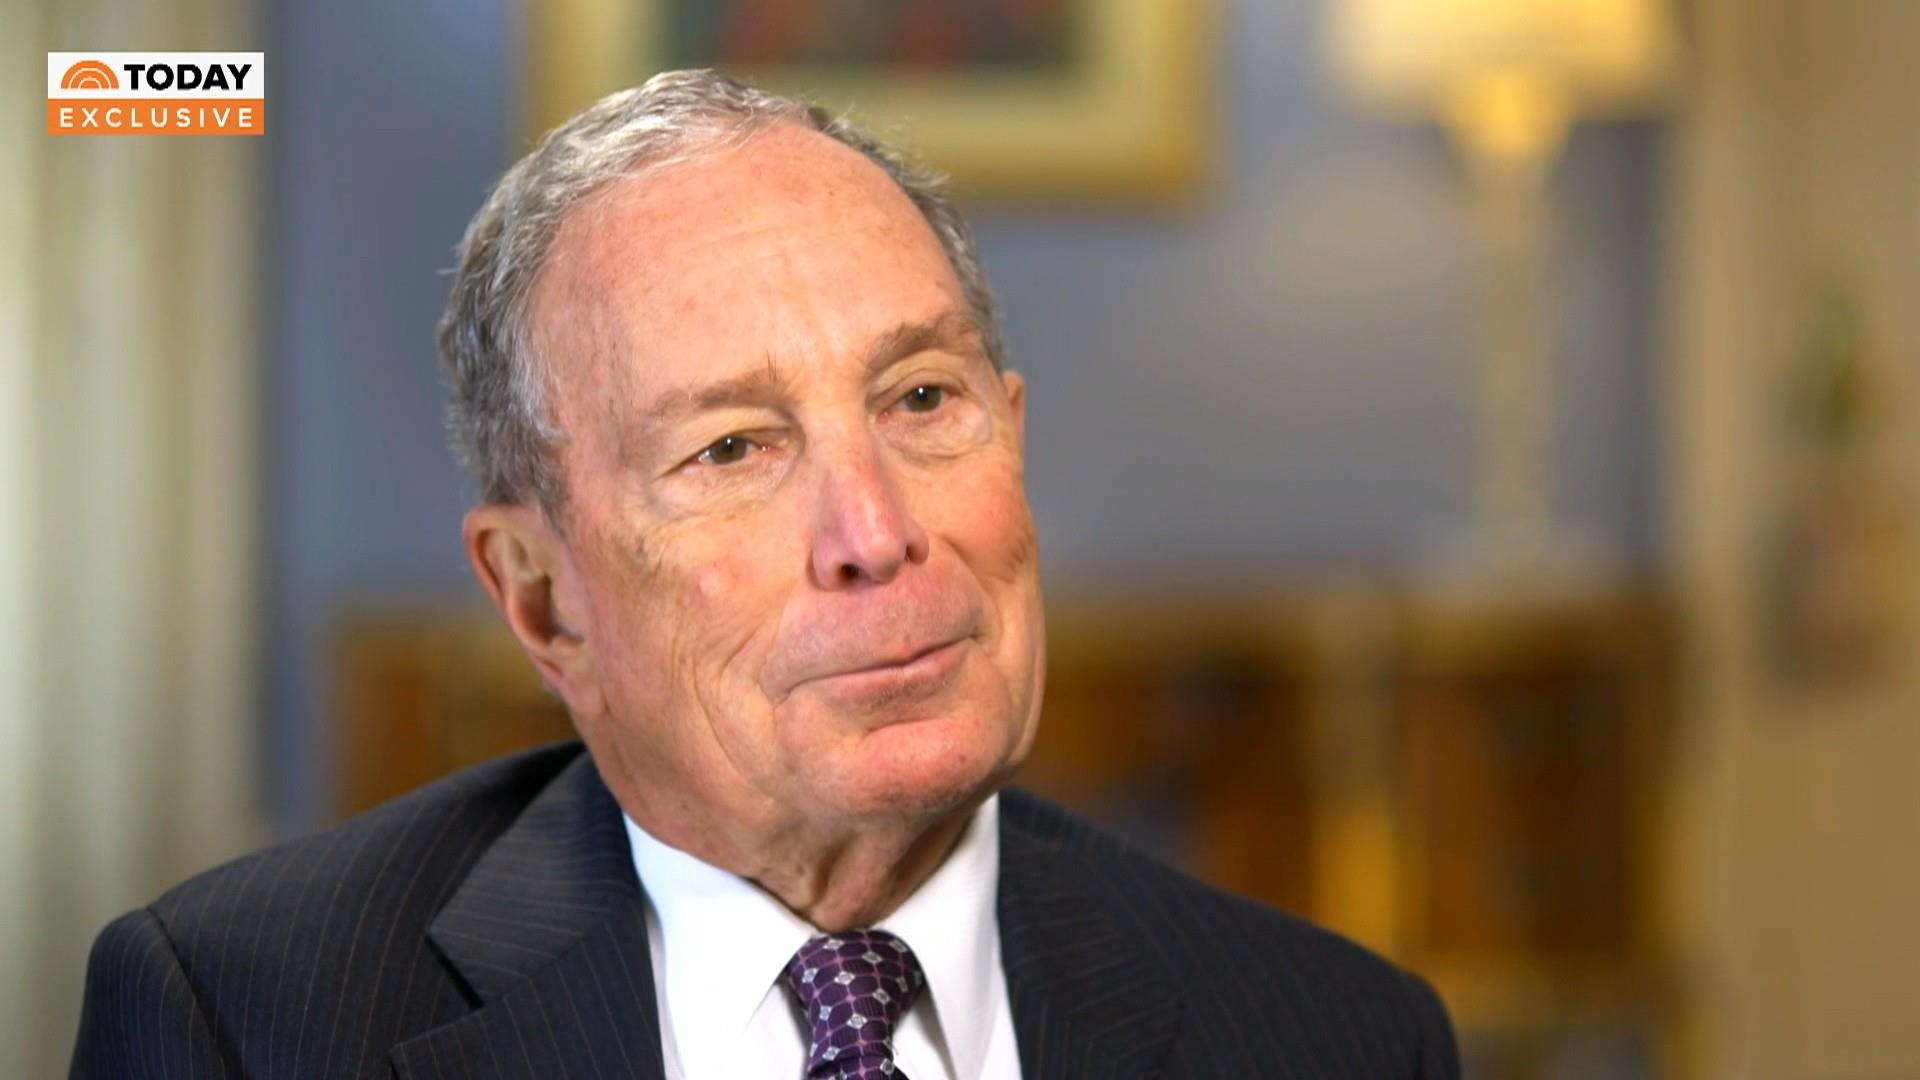 Bloomberg says he'd vote to convict Trump if he were a senator